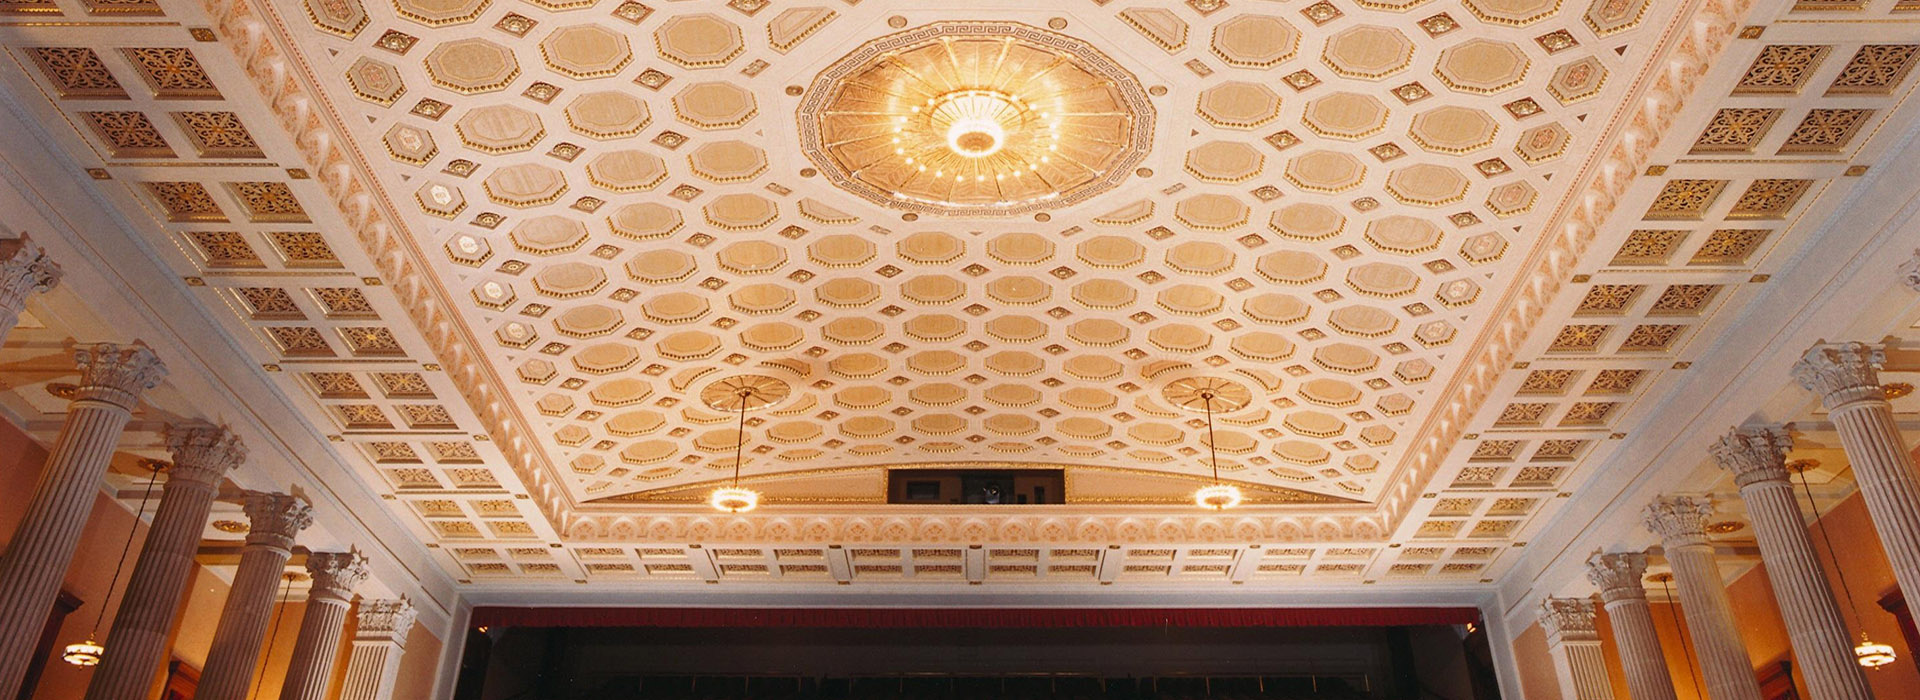 Stambaugh-Auditorium-n-crop-1920x700